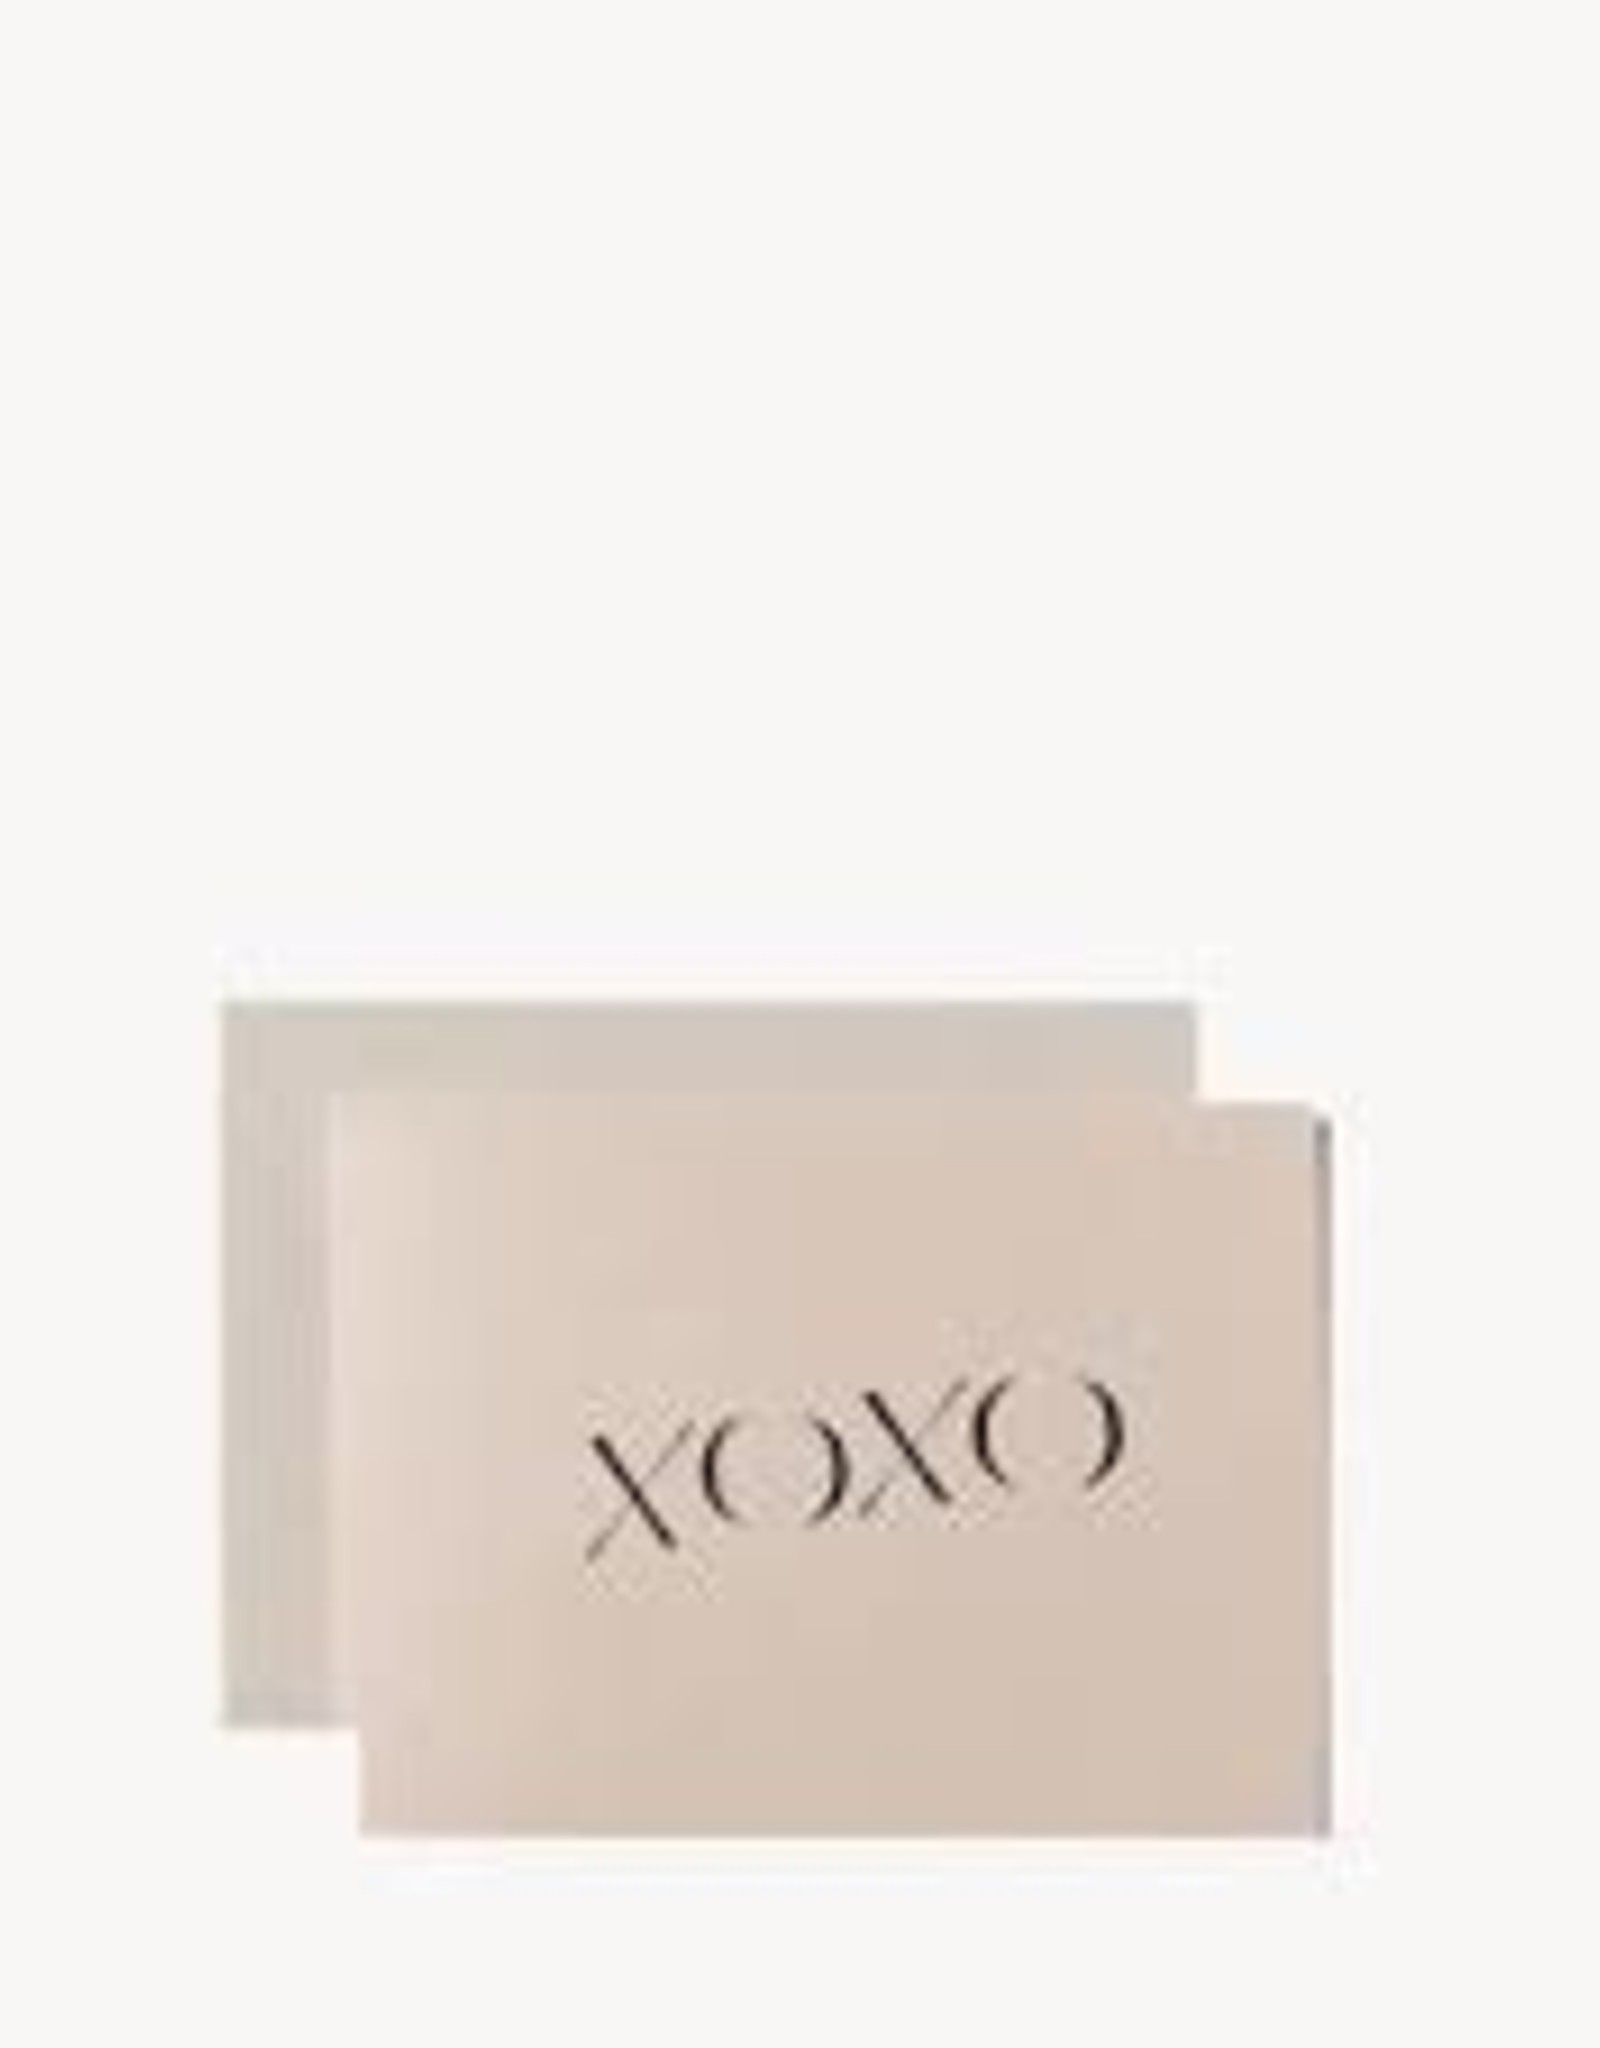 Wilde House Paper XOXO Card